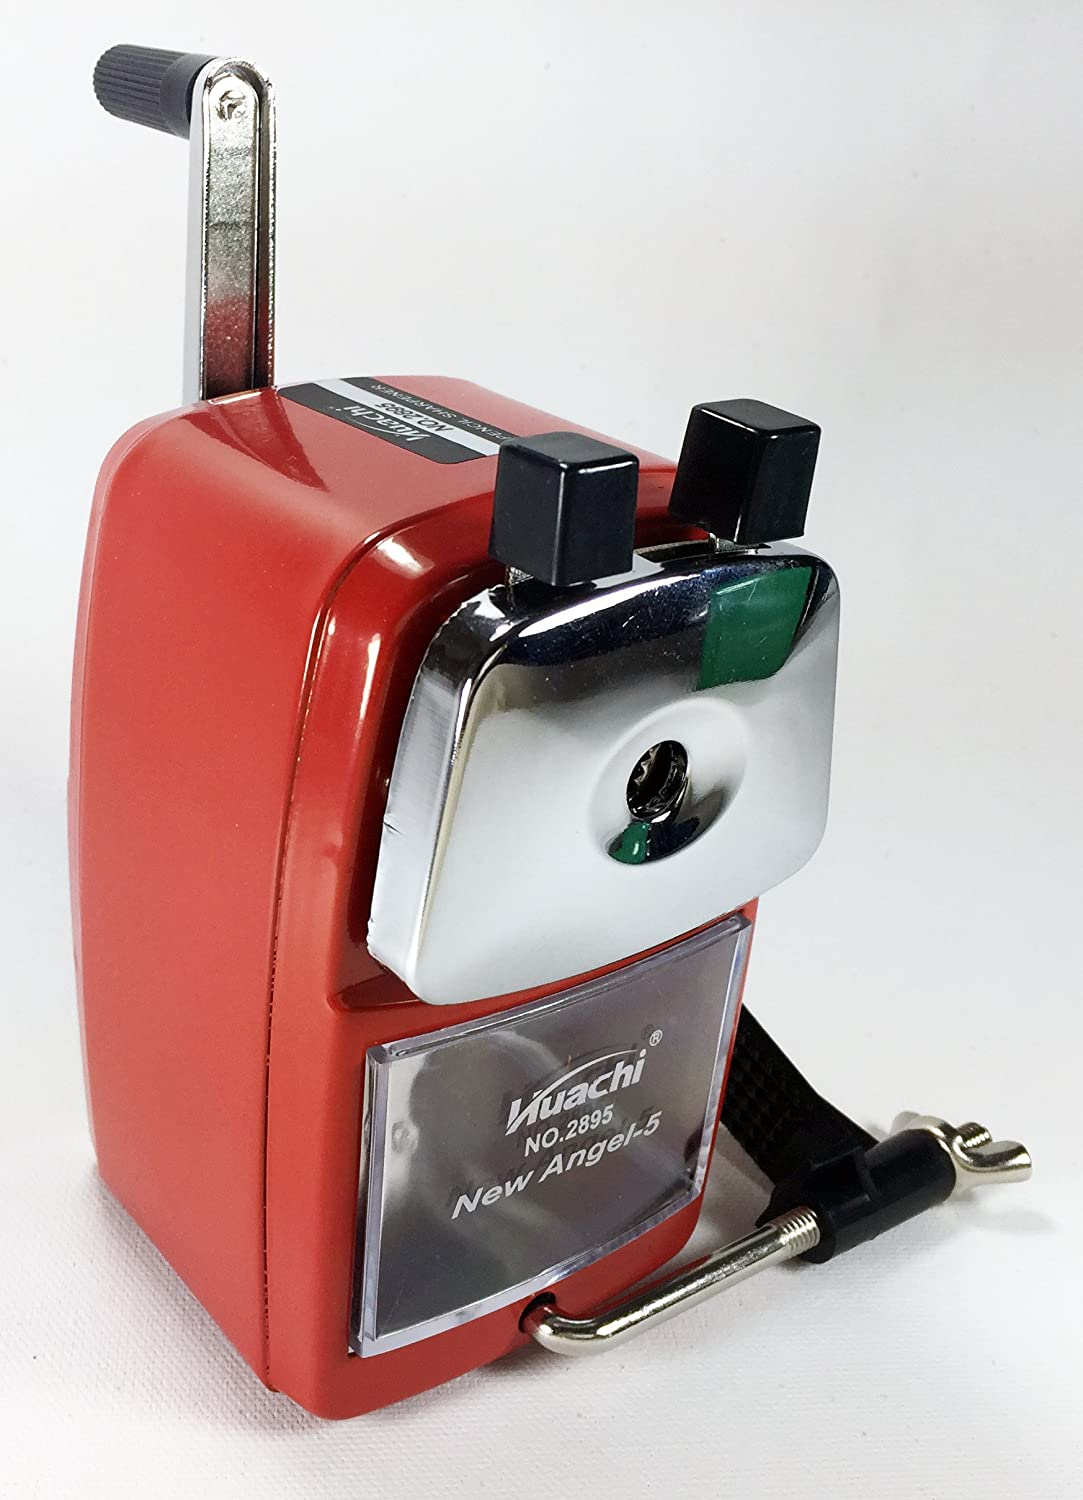 New Angle-5 Metal Pencil Sharpener Hand-Cranked, Quiet for Office, Home and School (RED) Canada Supplier